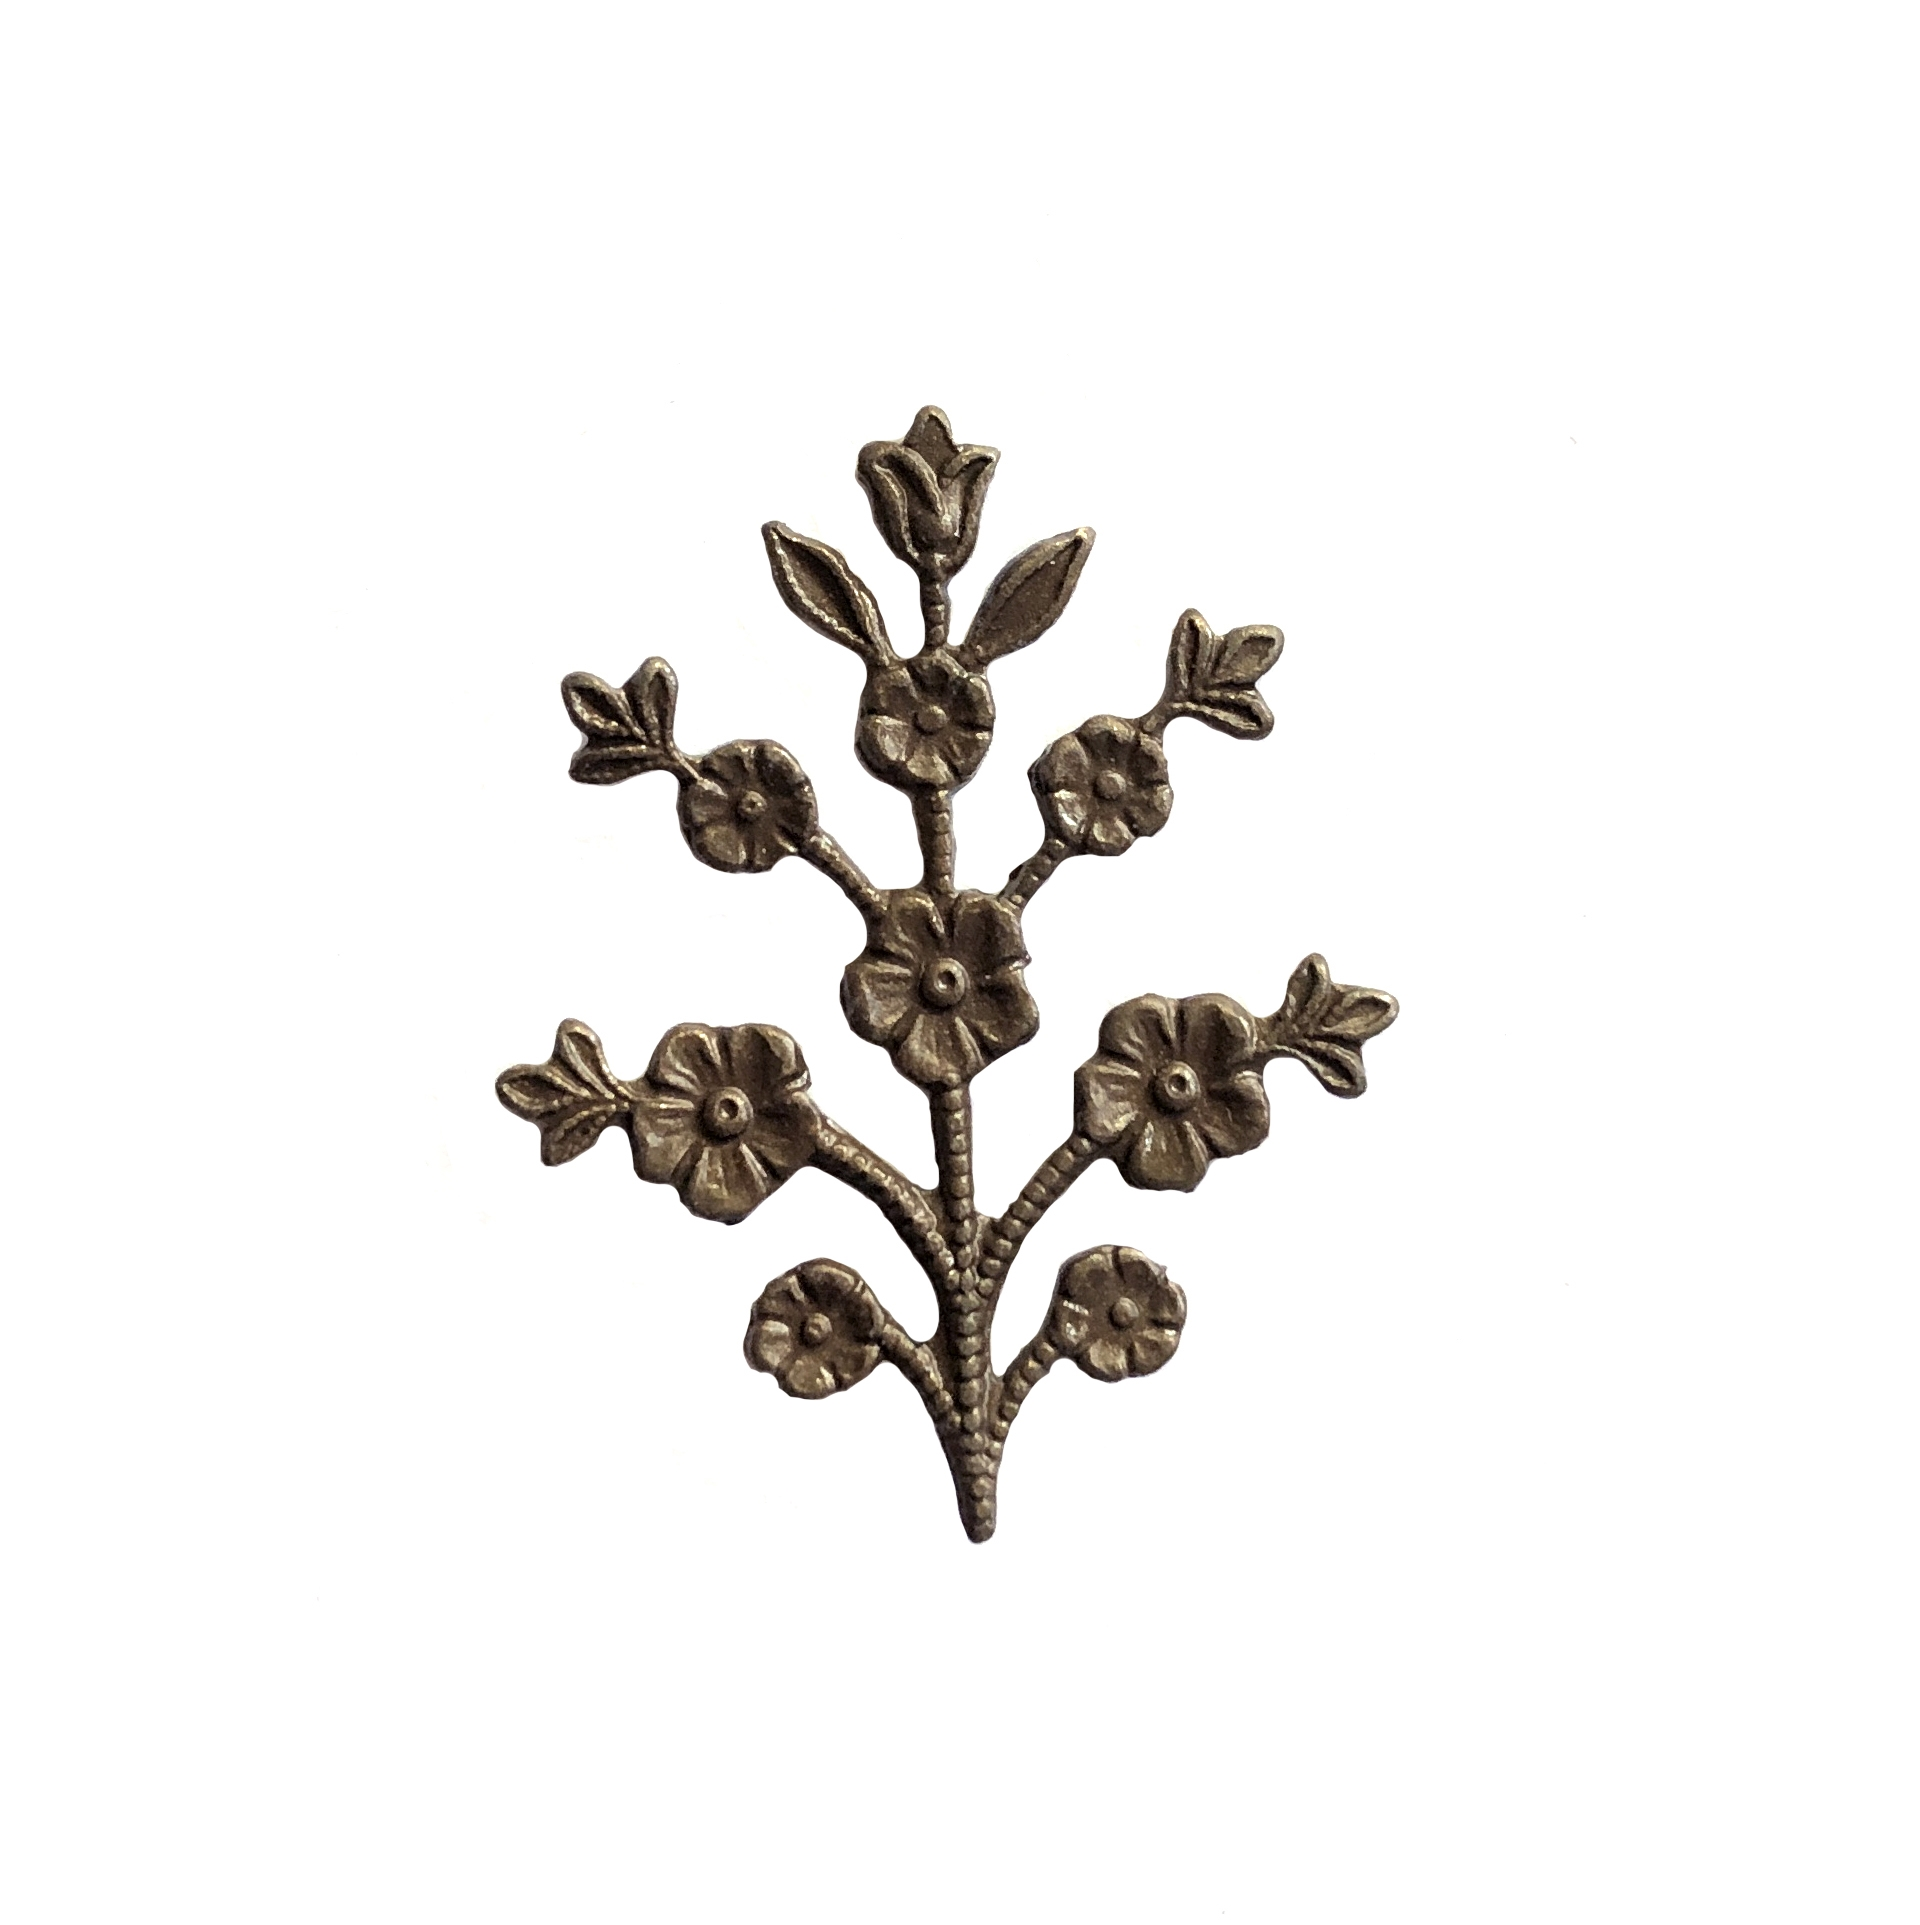 floral sprig,  chocolate brass, B'sue Boutiques, nickel free, US made, jewelry supplies, vintage supplies, flower stem, flower sprig, flower, stem, jewelry making, jewelry findings, sprig, 30x24mm, 09921